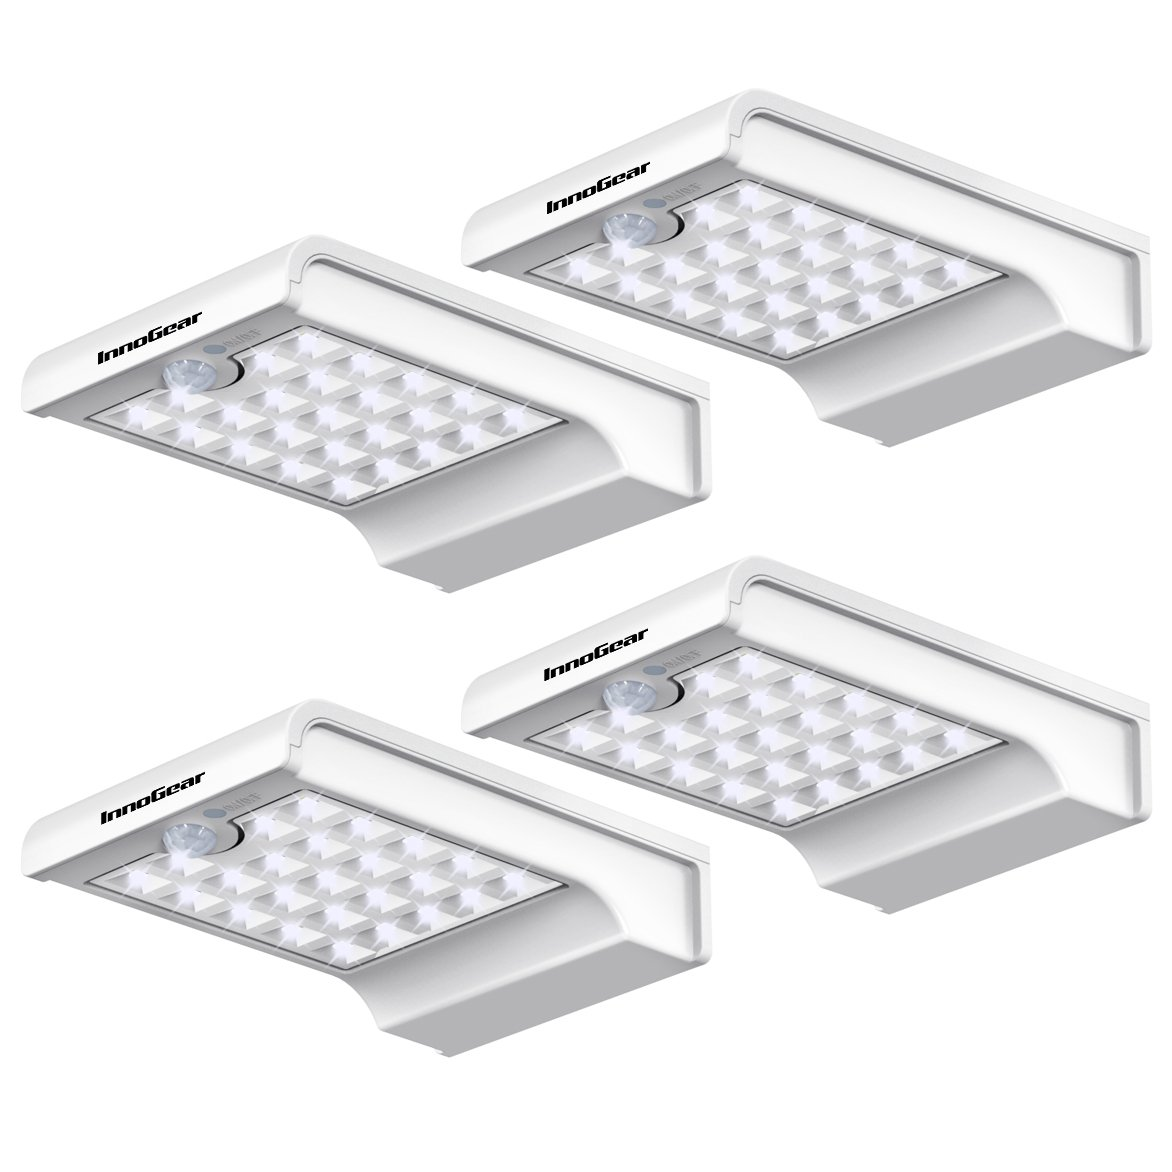 InnoGear 24 LED Solar Lights Dim to Bright Motion Sensor Outdoor Wall Light Security Light Night for Gutter Patio Garden Path, Pack of 4 by InnoGear